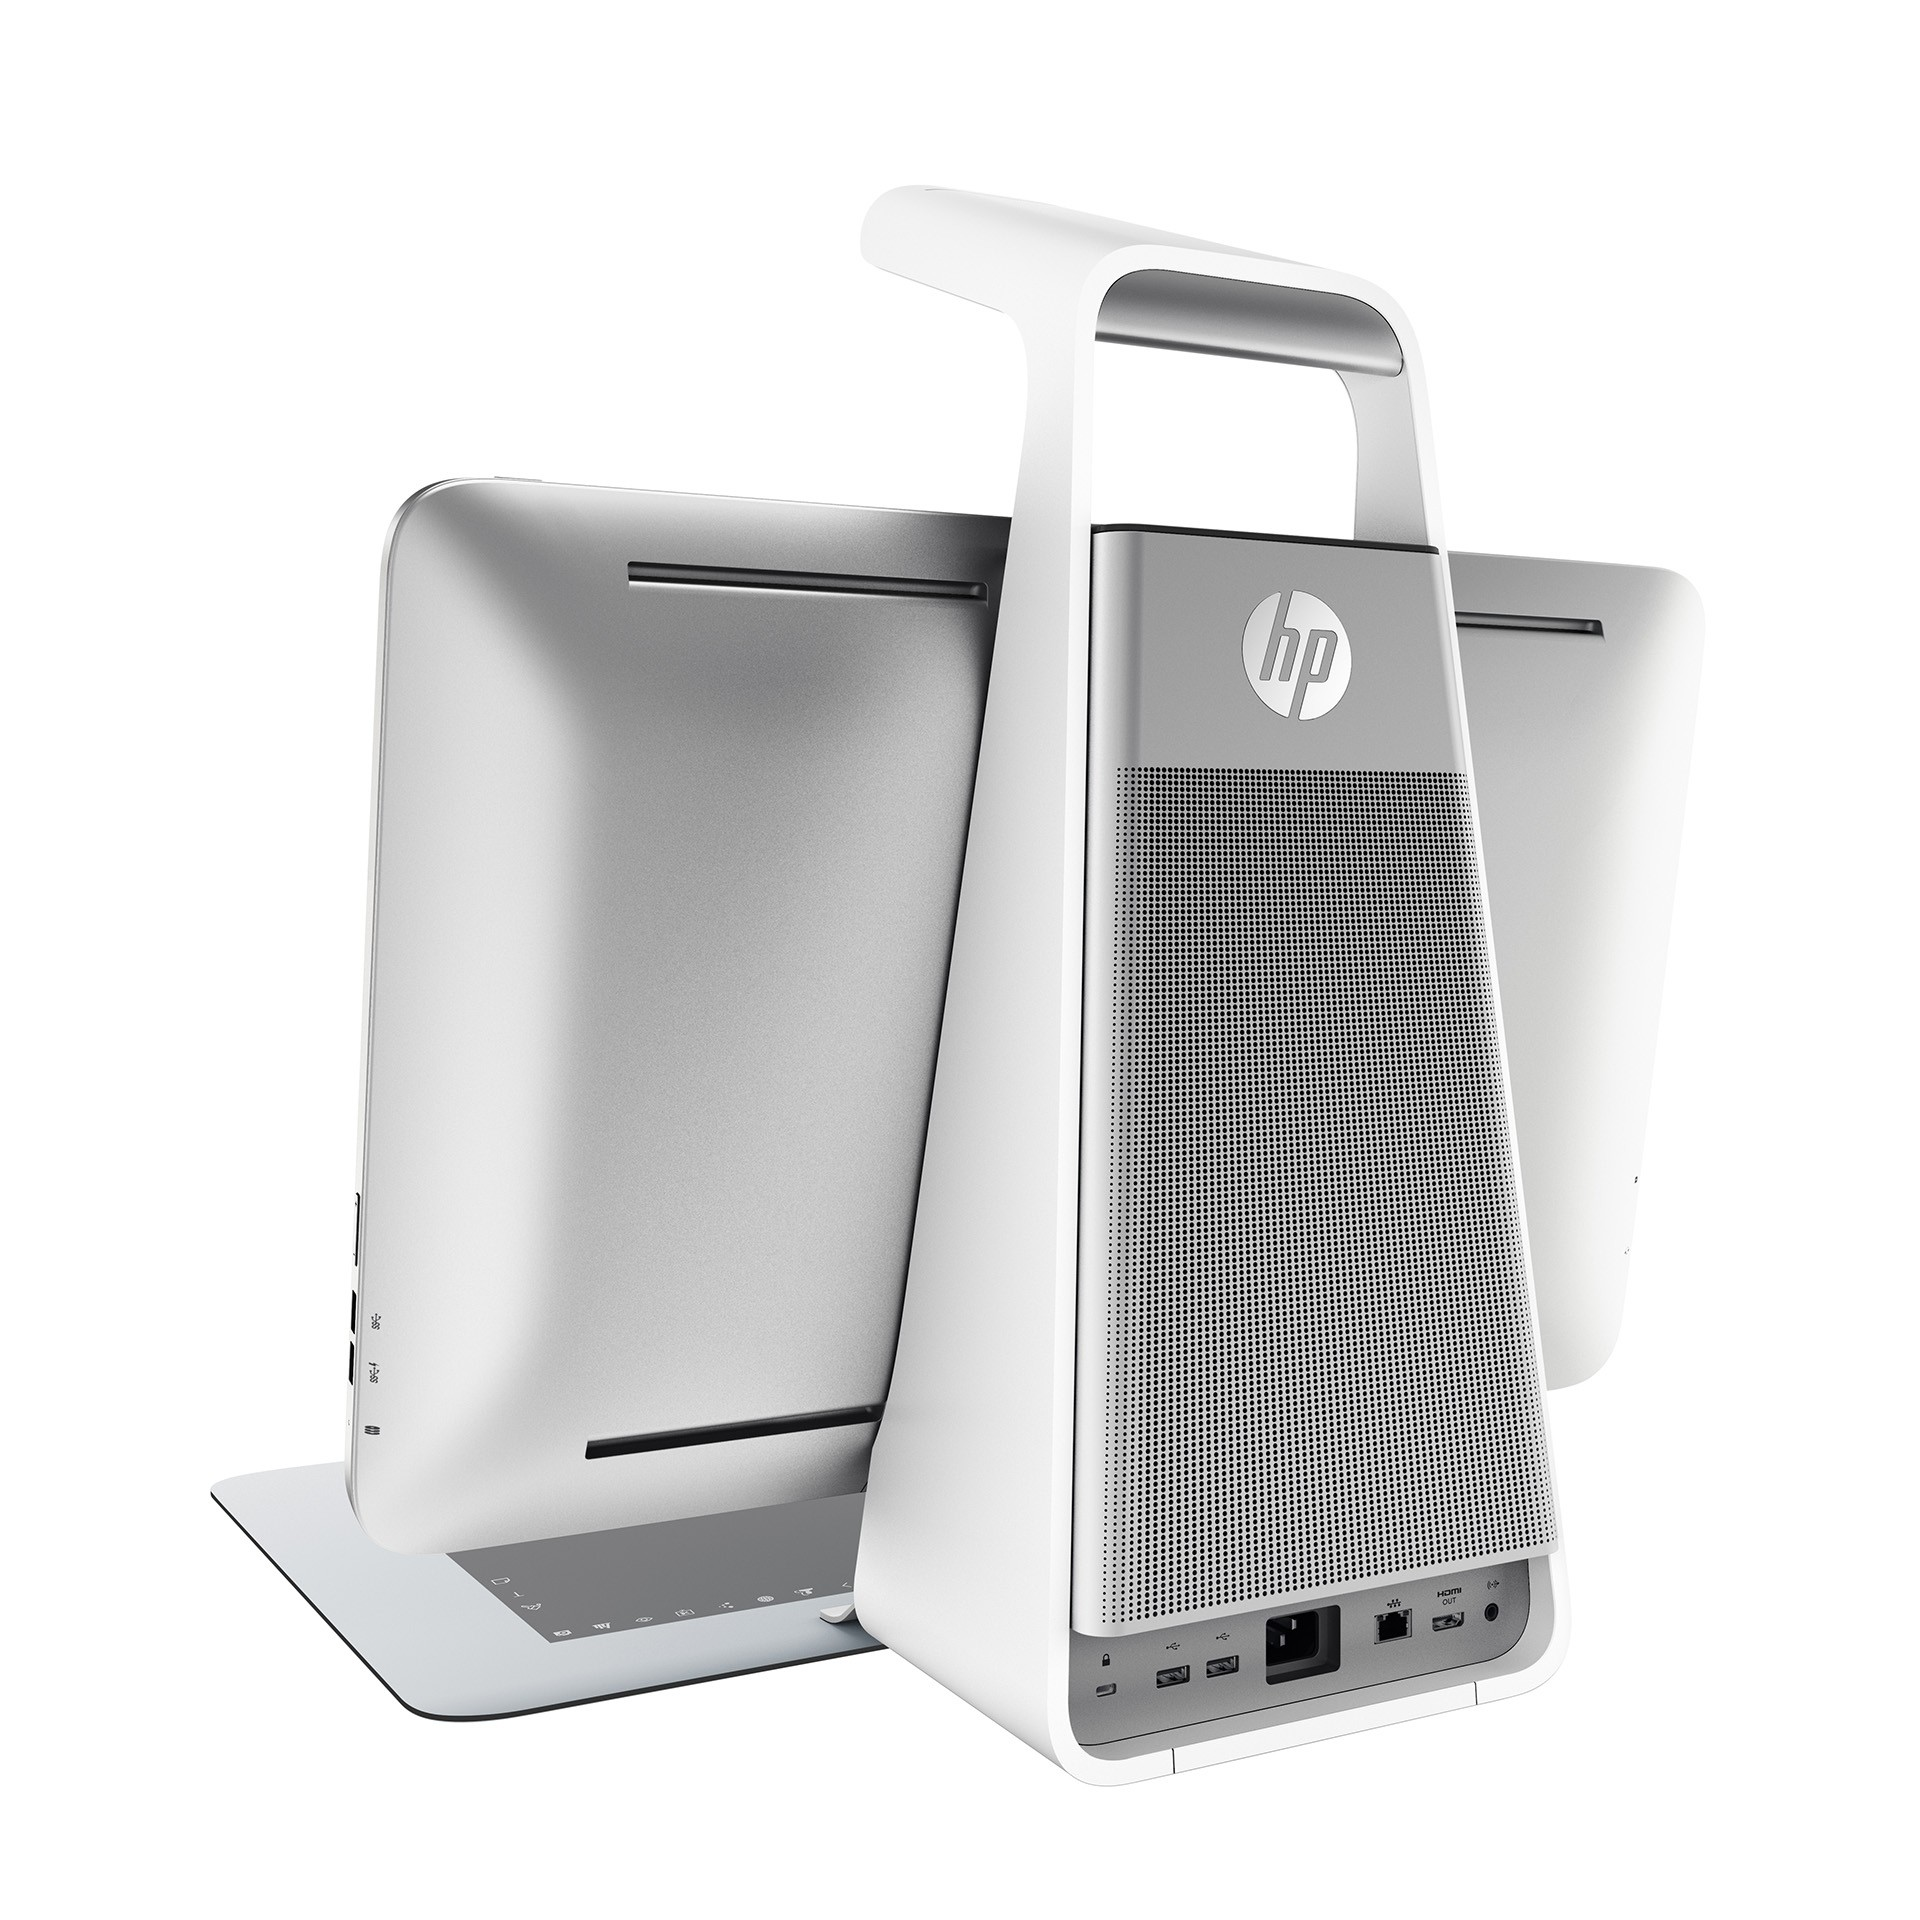 HP Sprout Pro 23-s505 All-in-One 3D Scanning PC 23